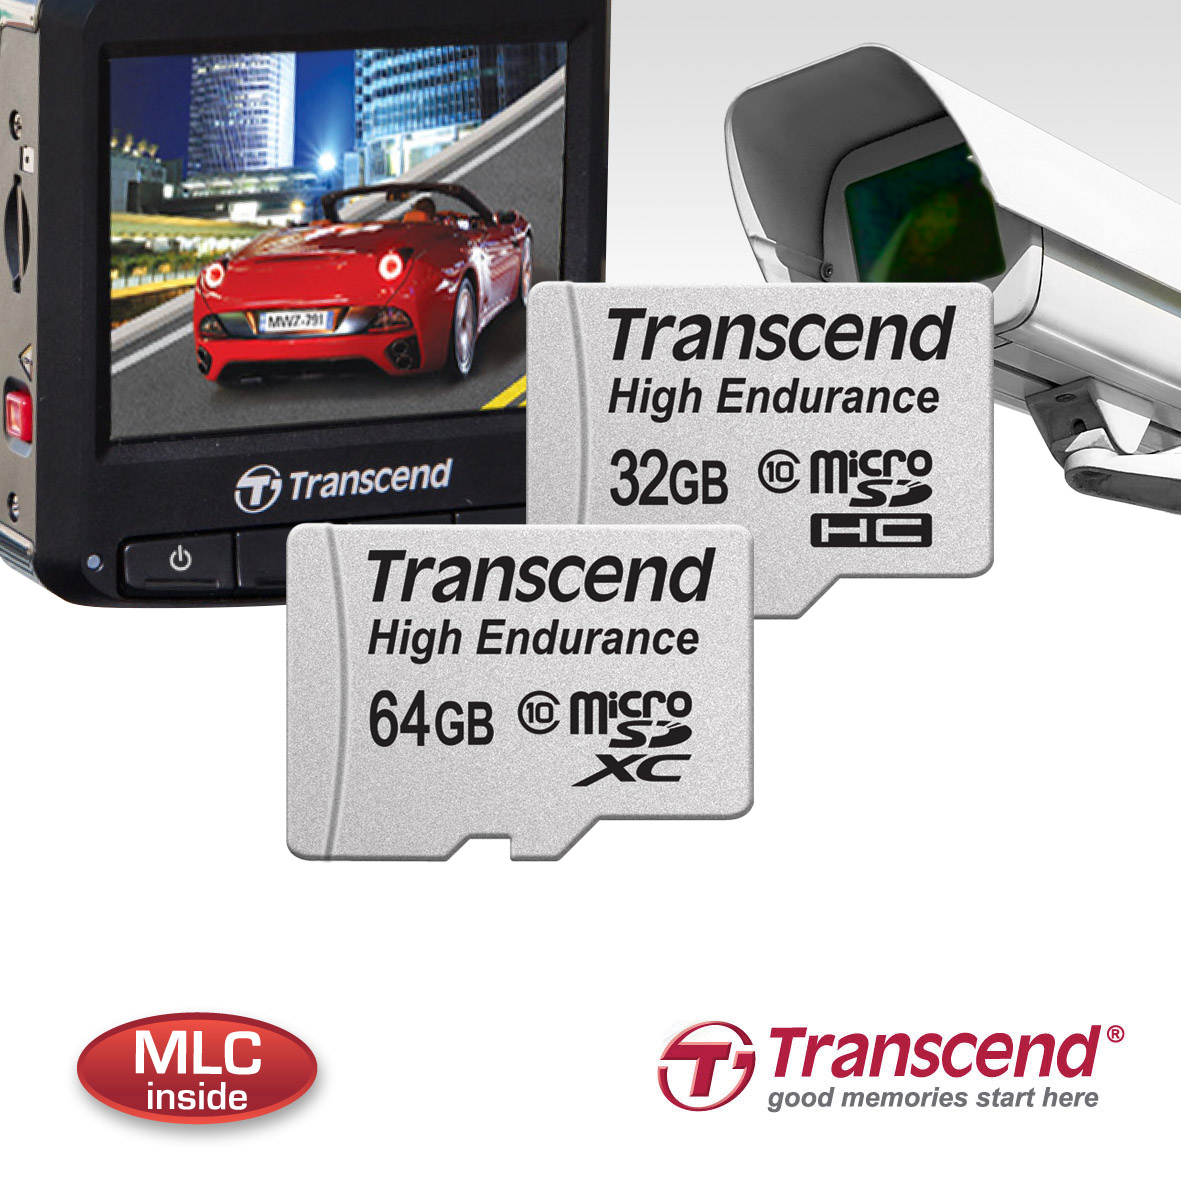 Transcend High Endurance microSDHC/SDXC Memory Cards